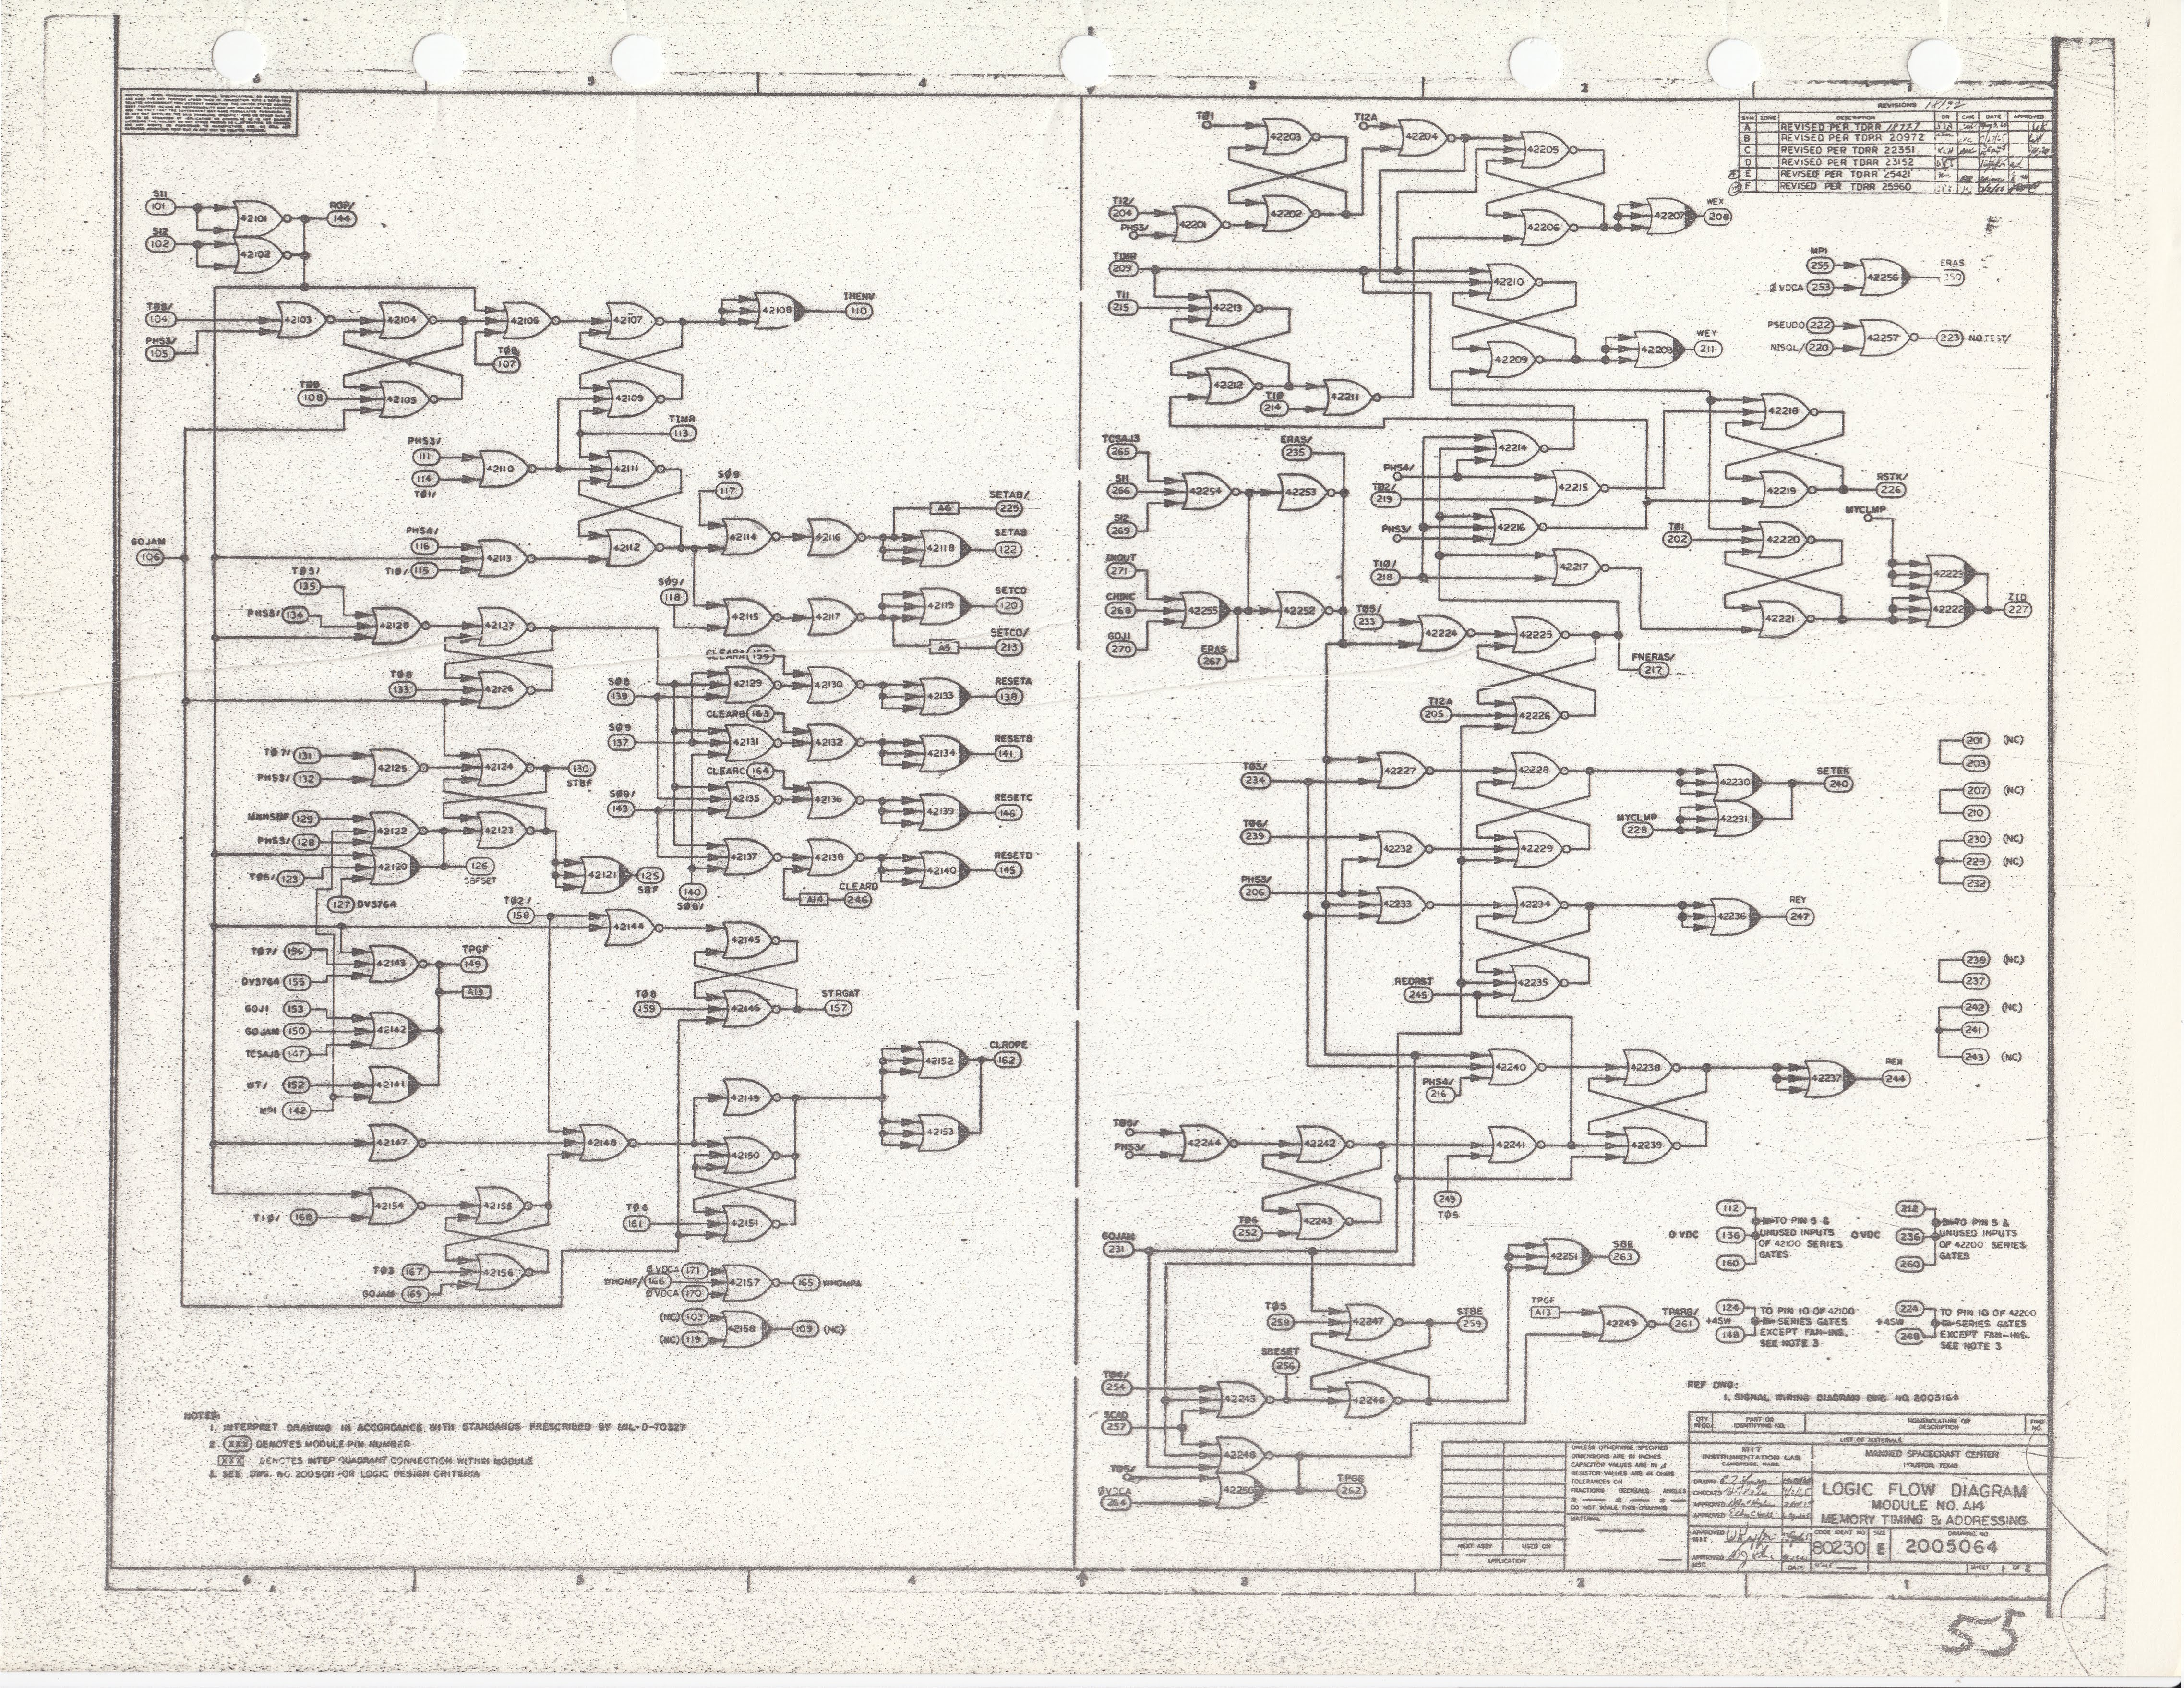 Virtual Agc Electrical Mechanical Page Of Fortune Circuit Diagram Electronic Diagrams Schematics 2005064f